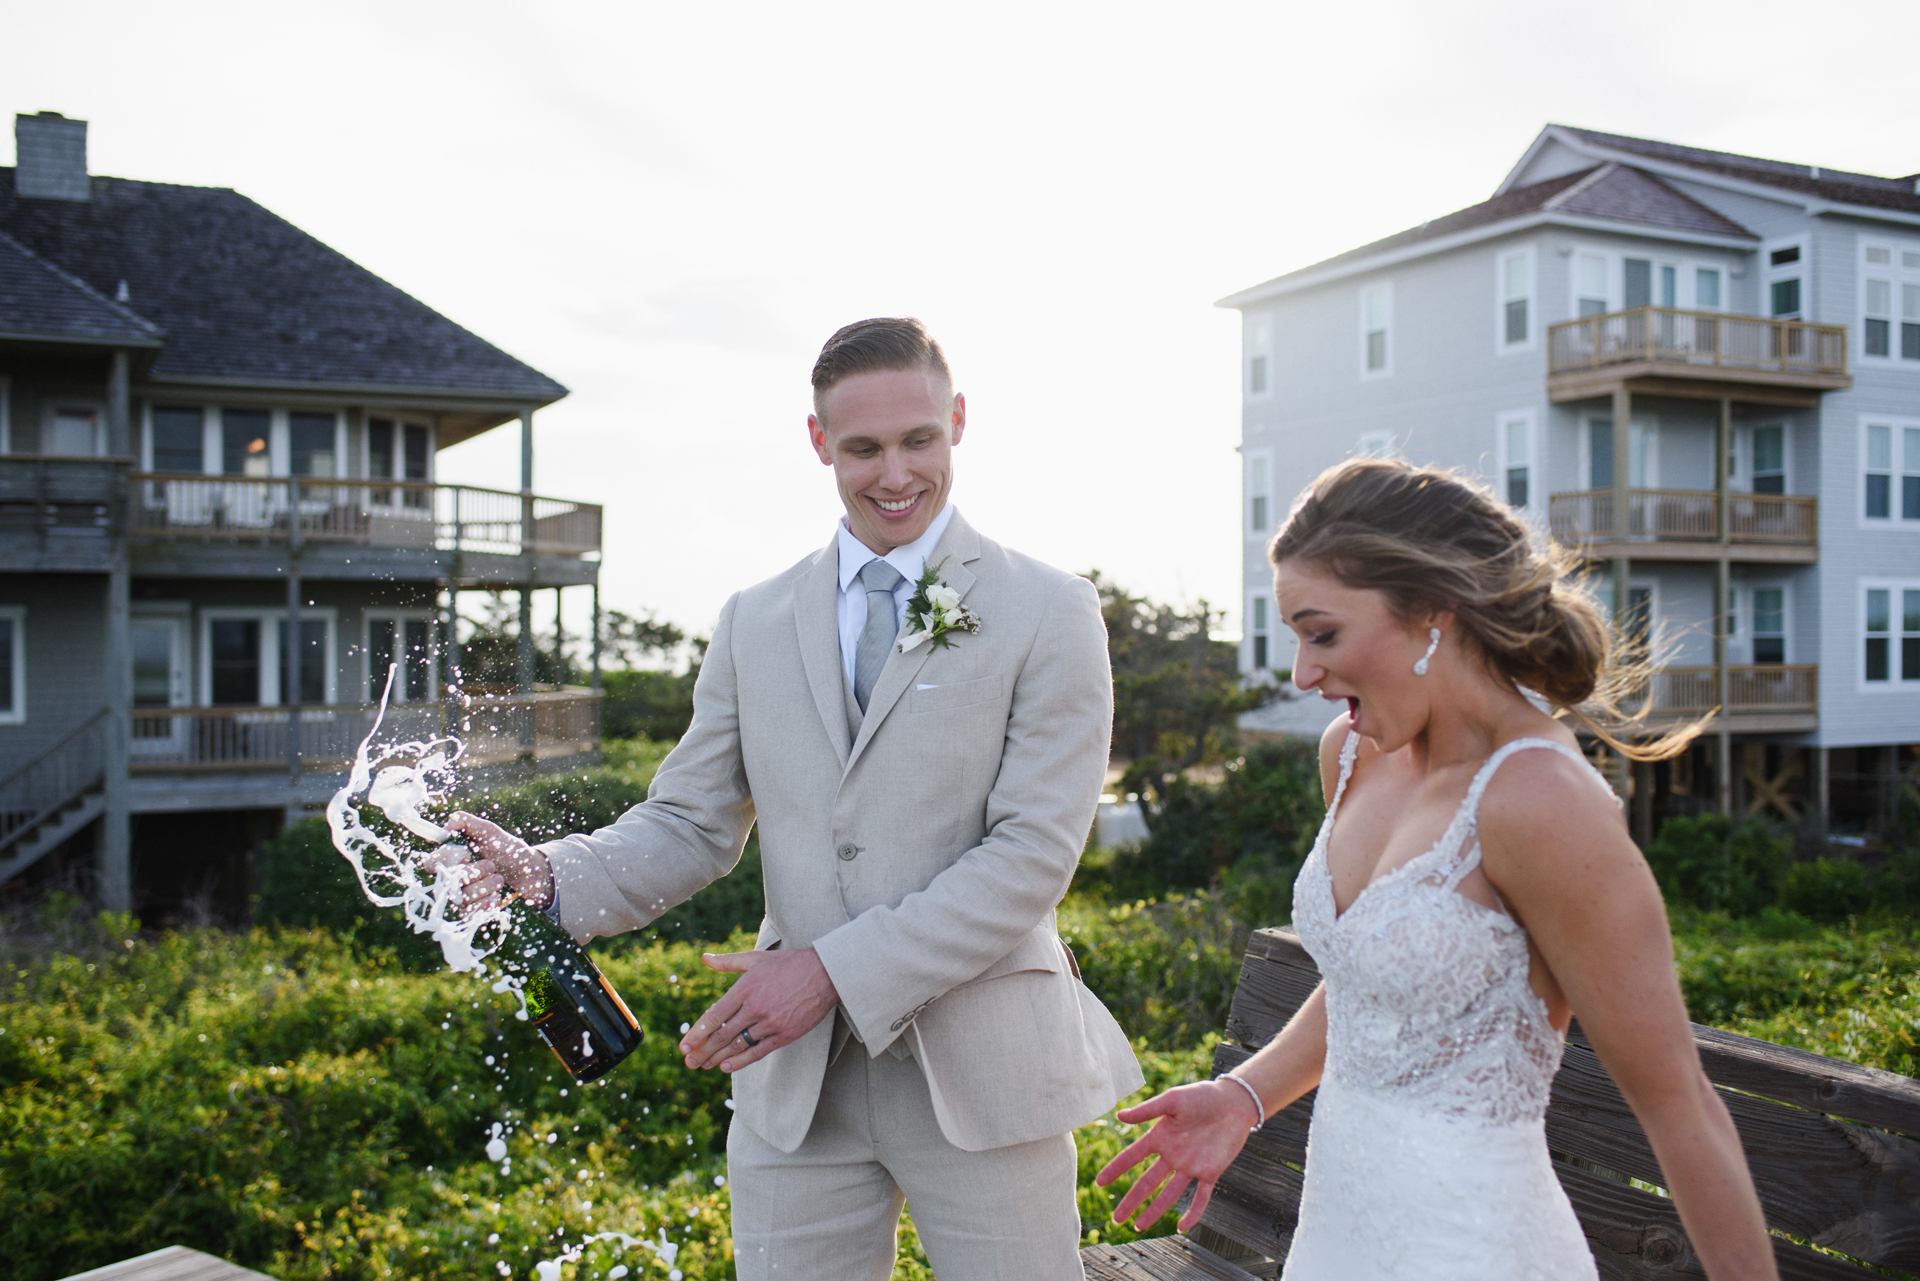 North Carolina Small Wedding Ceremony Photo | The bride and groom are sprayed with champagne while opening a bottle together